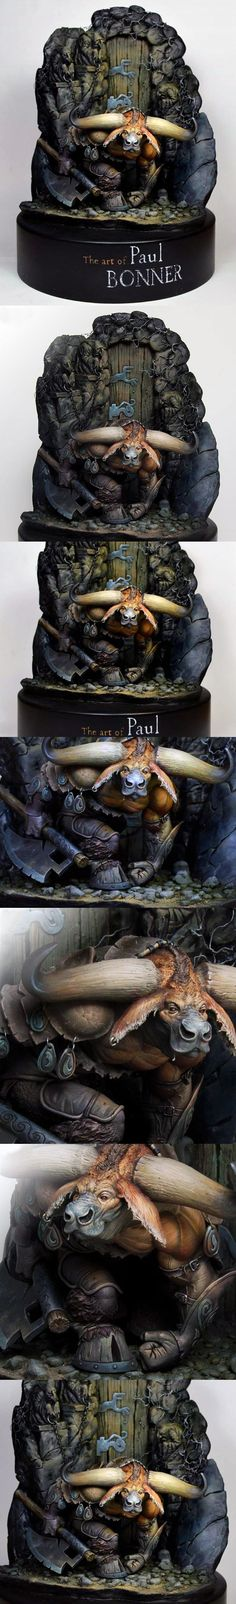 The Art of Paul Bonner. Sculpted by Joaquin Palacios. Painted by Marc Masclans